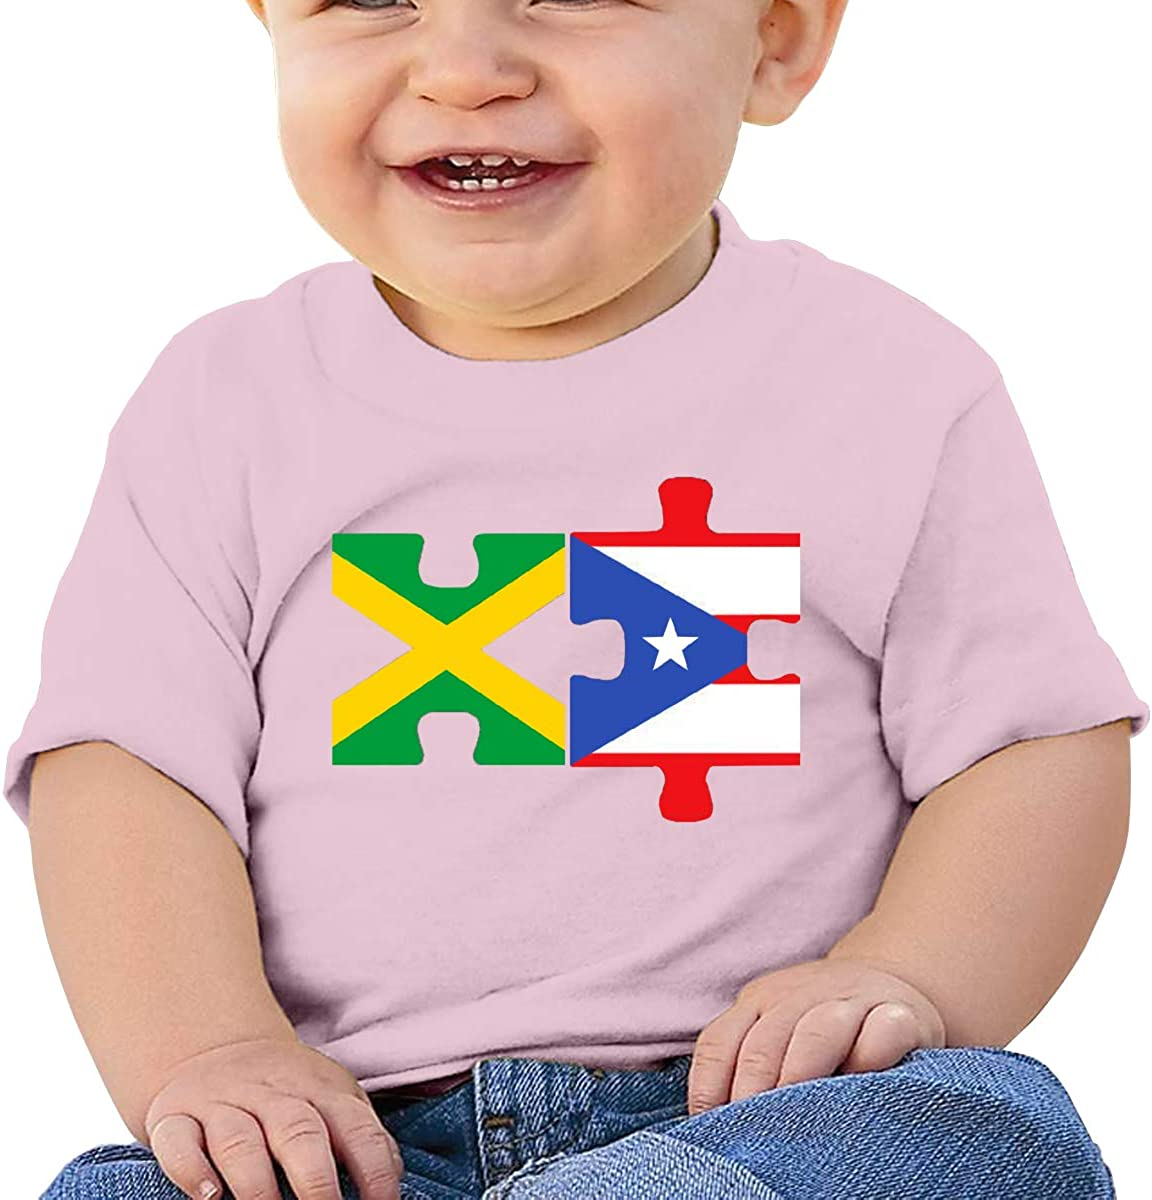 Jamaica Puerto Rico Flags Toddler Short-Sleeve Tee for Boy Girl Infant Kids T-Shirt On Newborn 6-18 Months Black